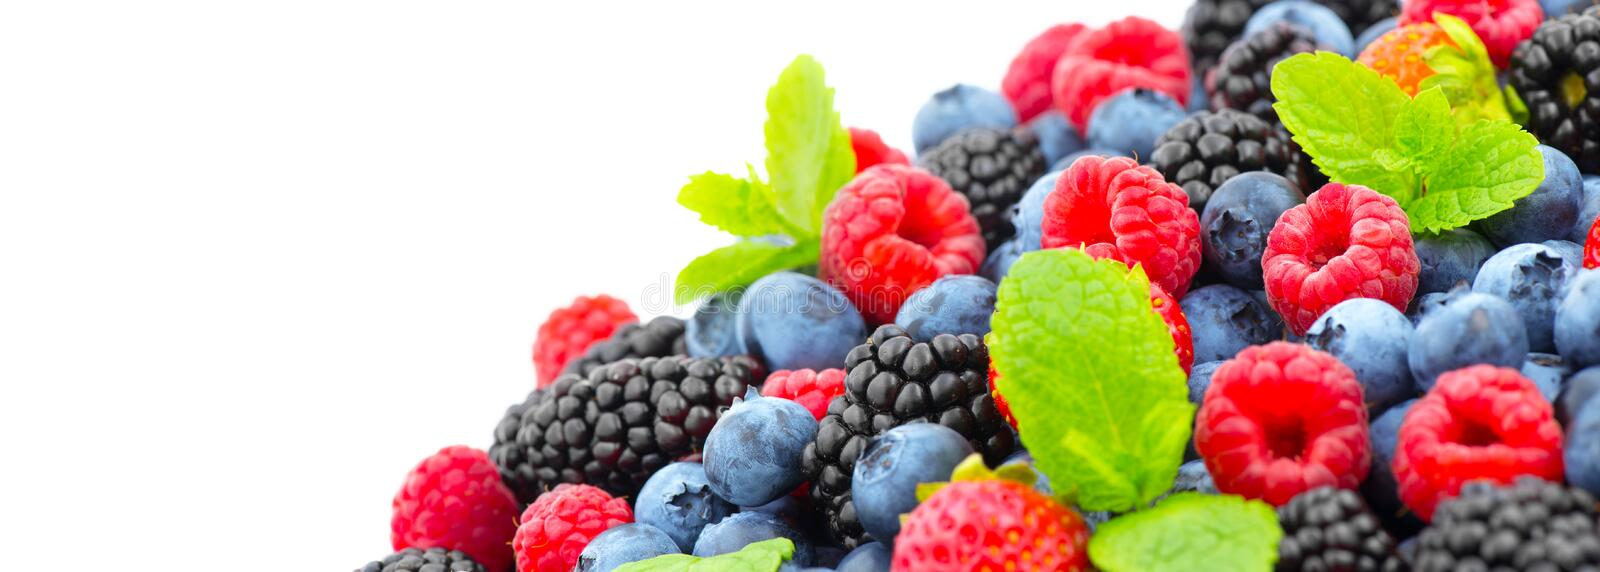 Berries. Various colorful berries background. Strawberry, raspberry, blackberry, blueberry closeup over white. Healthy eating royalty free stock photo